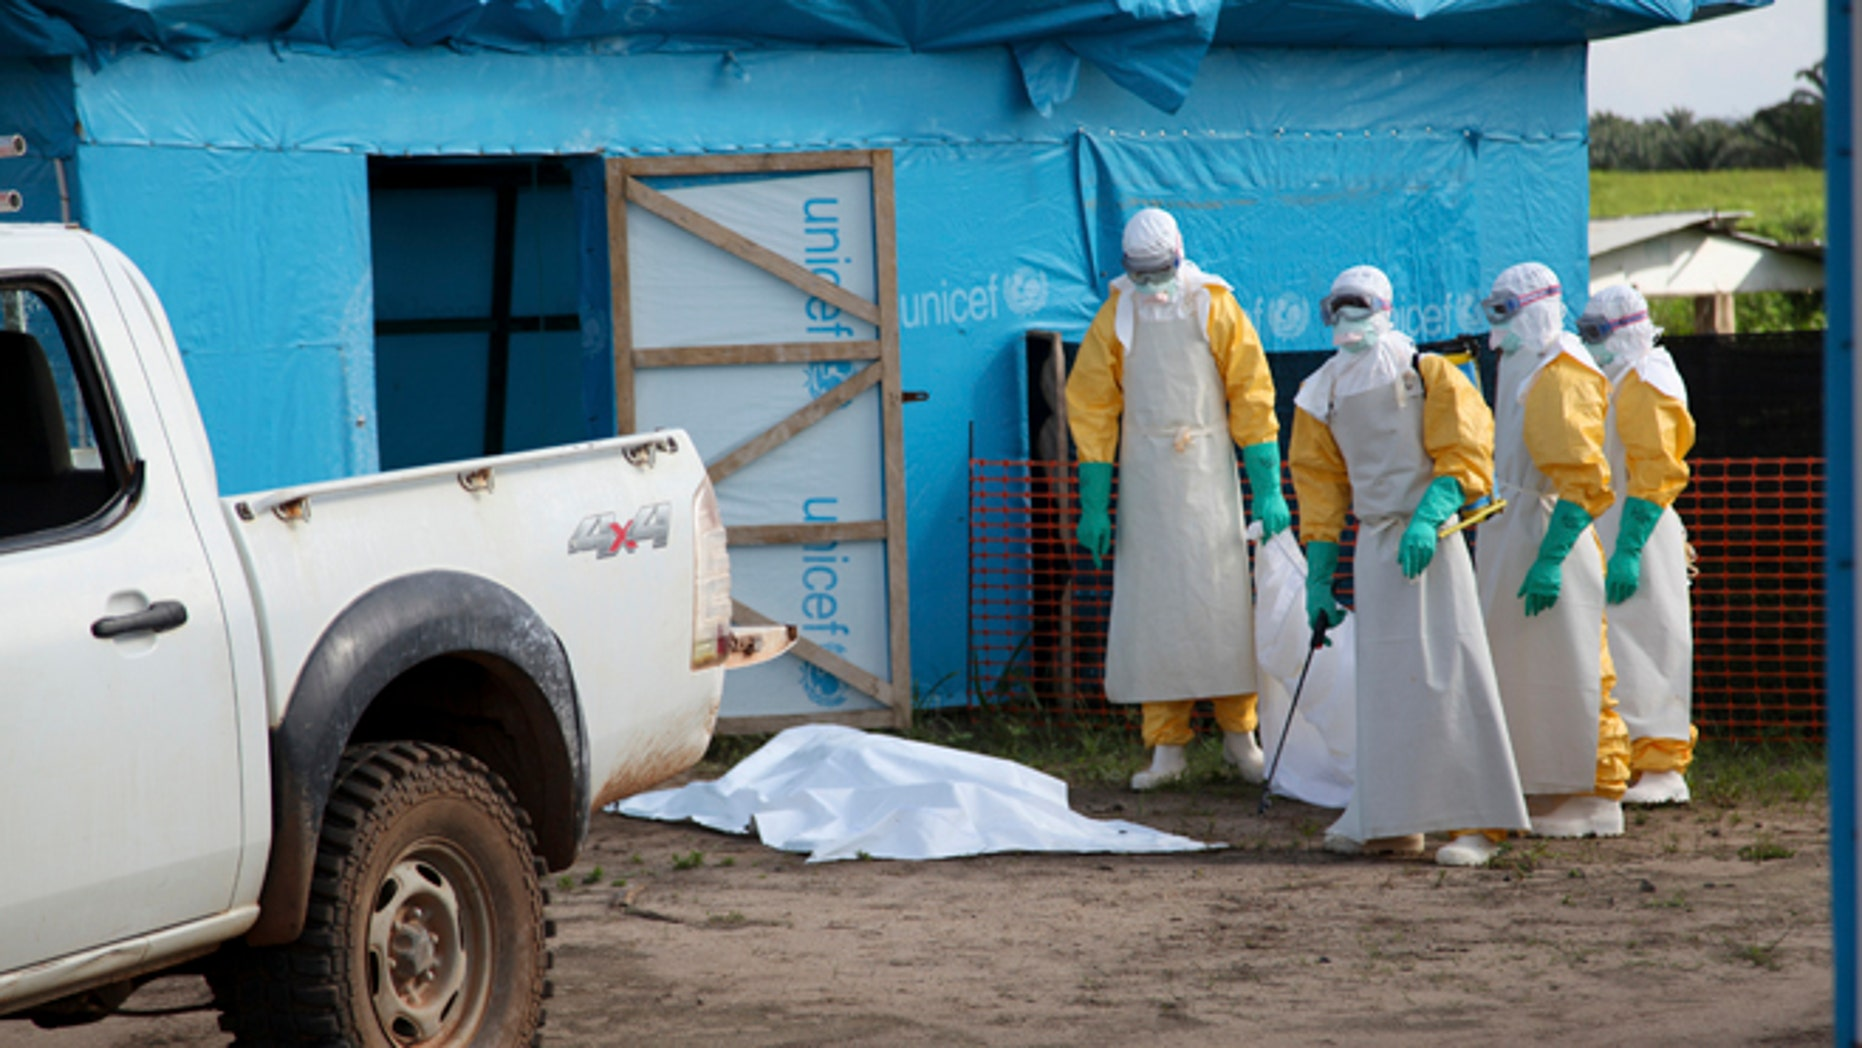 Health workers, wearing head-to-toe protective gear, prepare for work, outside an isolation unit in Foya District, Lofa County, Liberia in this July 2014 UNICEF handout photo. As of July 27, 2014, a total of 1,323 cases, including 729 deaths, had been attributed to Ebola virus disease (EVD) in the four West African countries of Guinea, Liberia, Nigeria and Sierra Leone. Liberia has borne 329 of these cases, including 156 deaths. REUTERS/Ahmed Jallanzo/UNICEF/Handout via Reuters  (LIBERIA - Tags: HEALTH) THIS IMAGE HAS BEEN SUPPLIED BY A THIRD PARTY. IT IS DISTRIBUTED, EXACTLY AS RECEIVED BY REUTERS, AS A SERVICE TO CLIENTS. FOR EDITORIAL USE ONLY. NOT FOR SALE FOR MARKETING OR ADVERTISING CAMPAIGNS. MANDATORY CREDIT - RTR40Z0Y